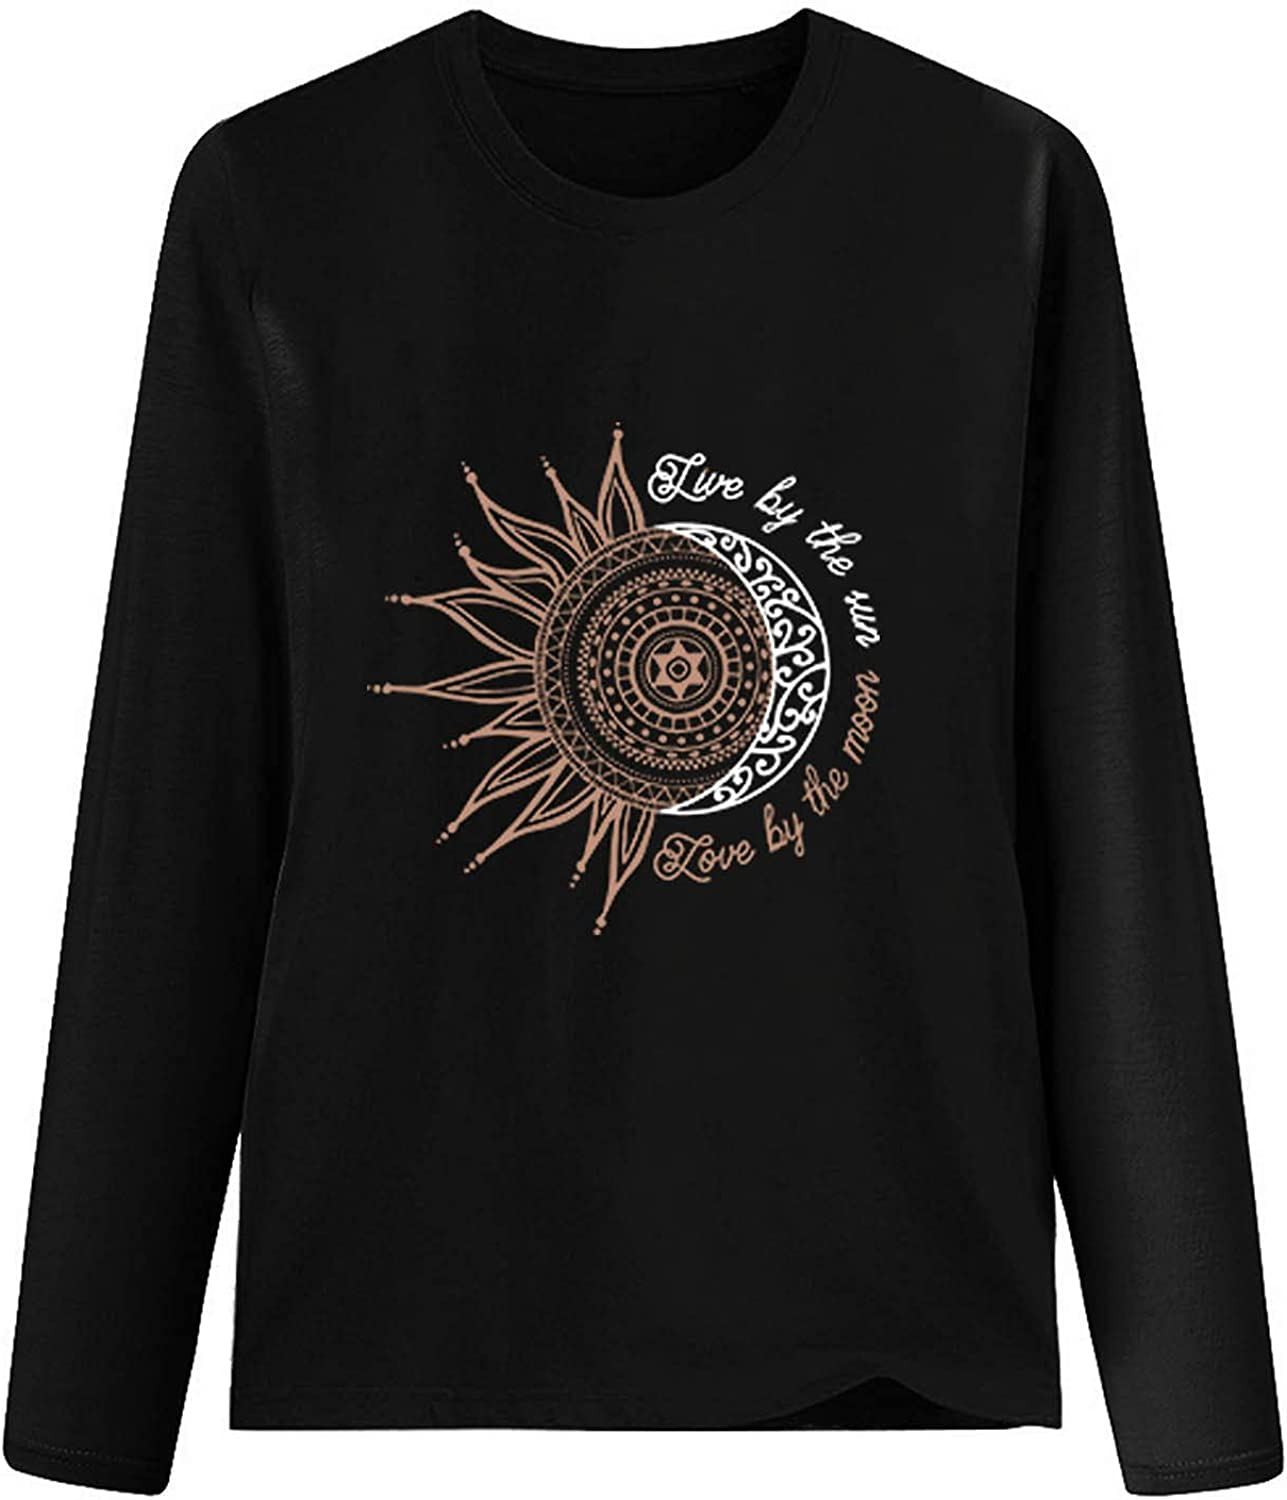 Graphic Long Sleeve Large special price Tops for Many popular brands Women Print Casual Loose Fit Shirts